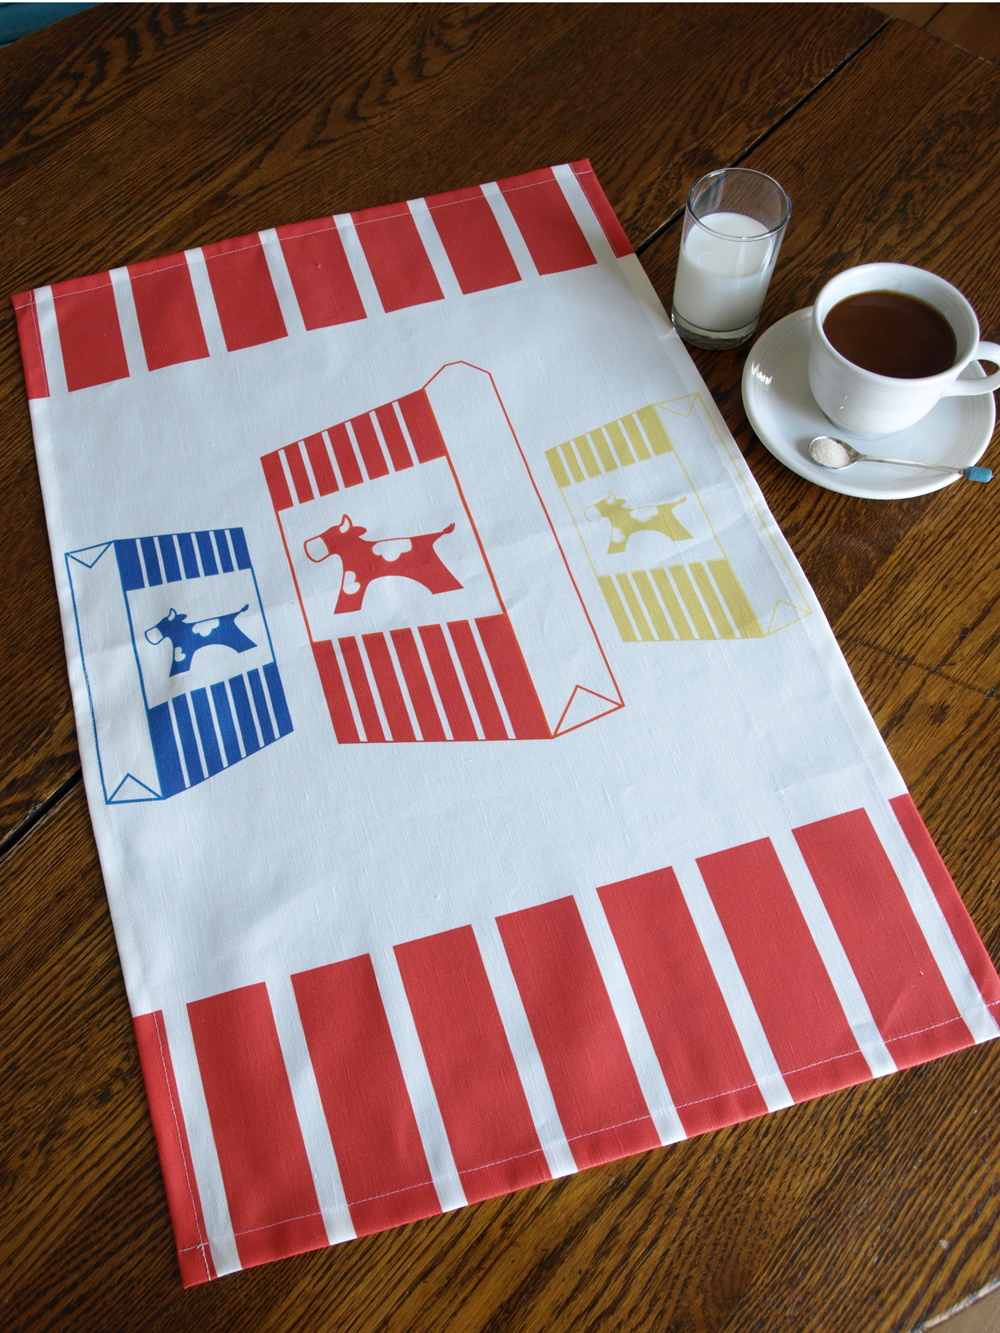 One last new design for now. I've always loved the iconic Swedish milk packaging (the Arla milk cow); the colors and the design are fun and playful, so I designed this kitchen tea towel (Tetra Mjölk) to give it a bit more prominence in the kitchen.